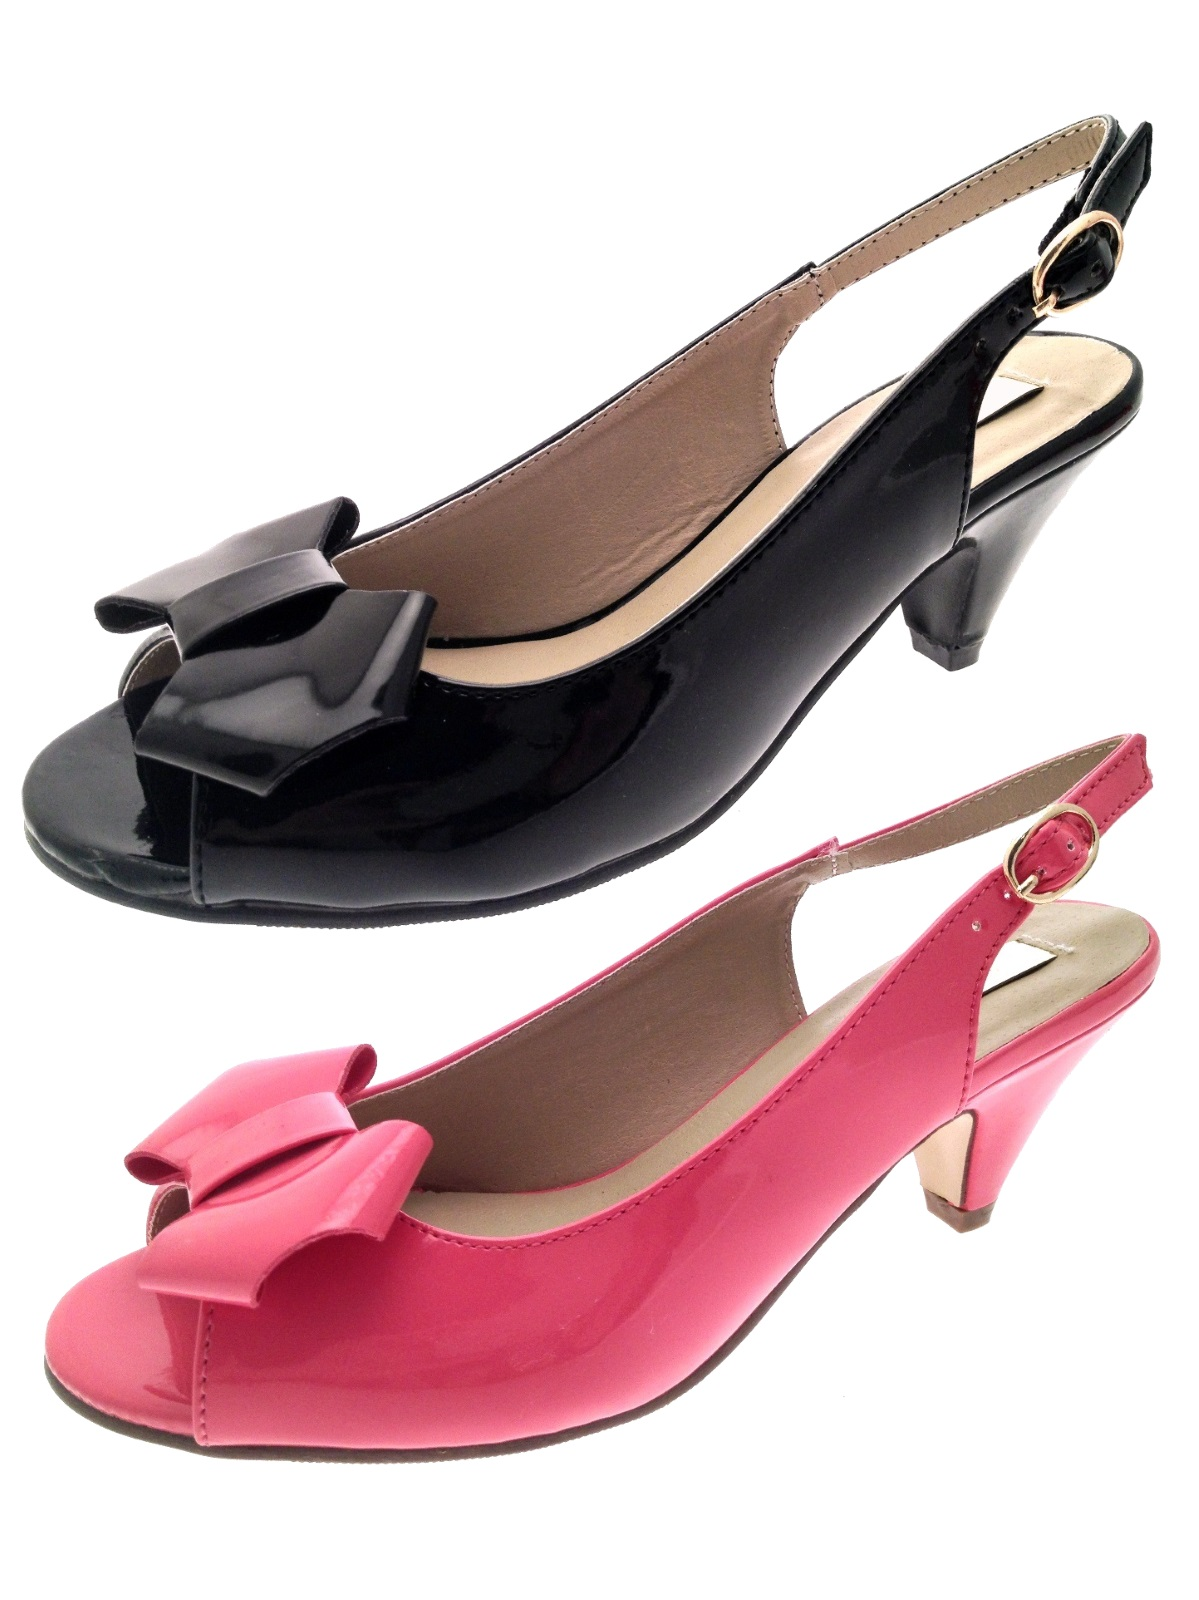 Are The Heels On Mens Shoes Wider